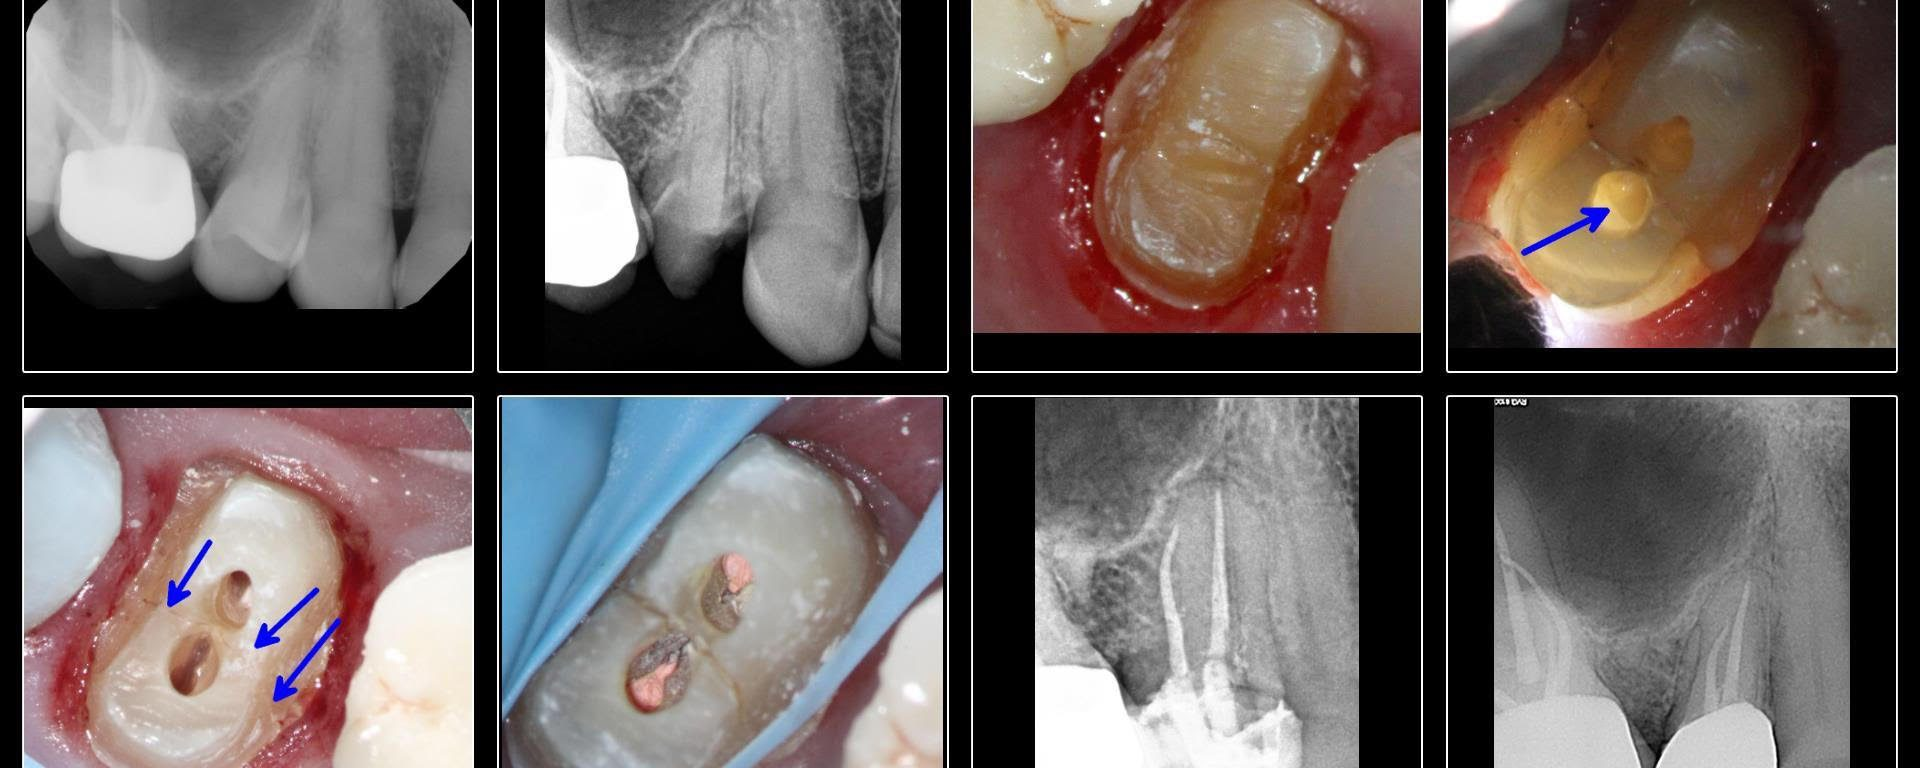 Fractured Bicuspid/MIE